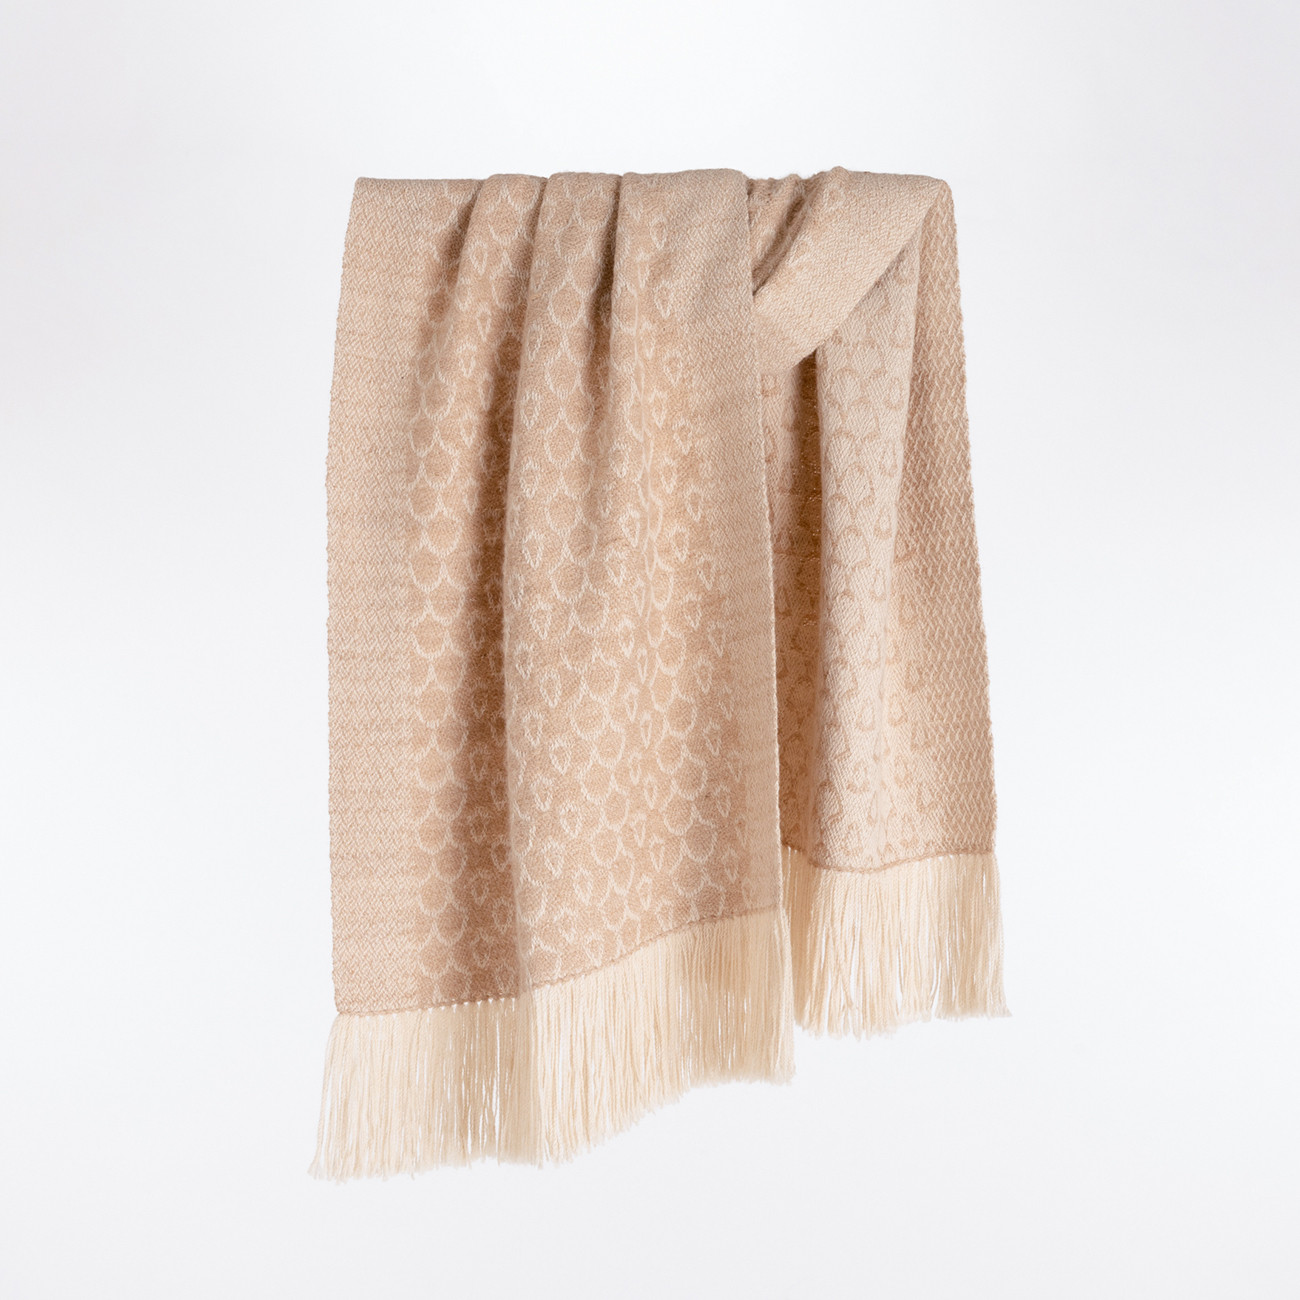 Handwoven Acorn Shawl - Natural Fawn and Cream Alpaca - 0